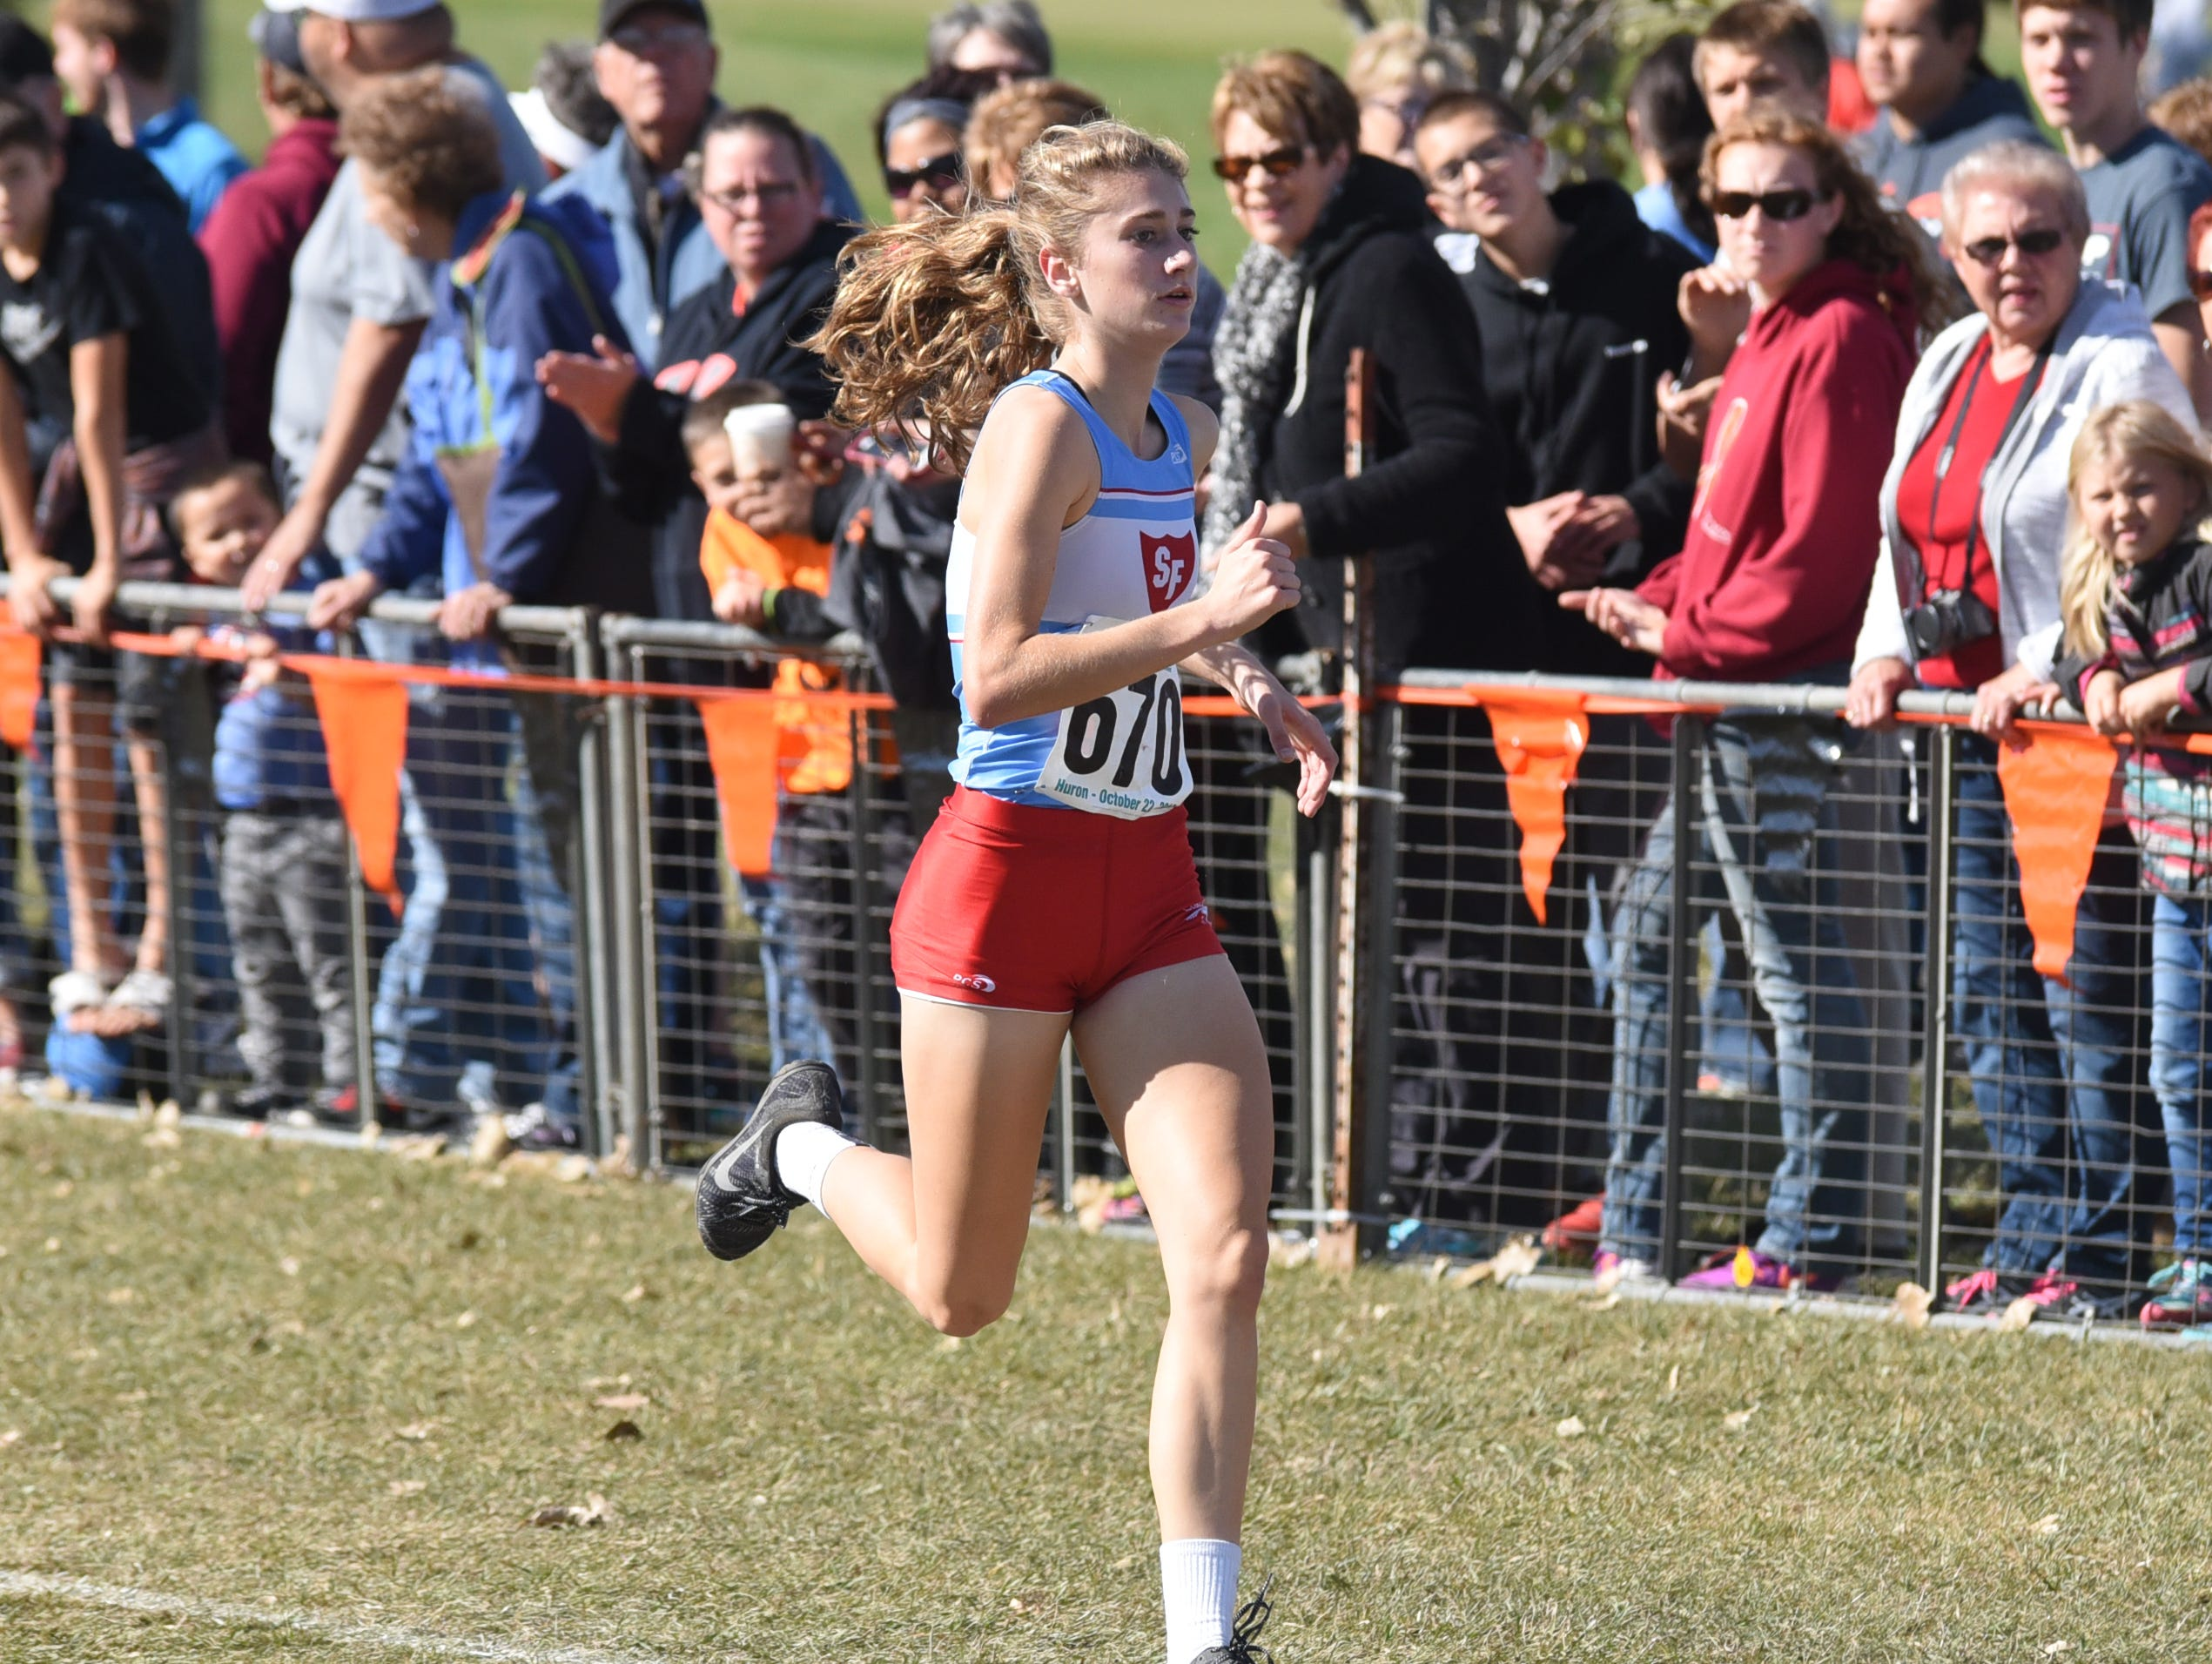 Sioux Falls Lincoln junior Courtney Klatt races toward the finish line in the Class AA girls' race at the South Dakota State Cross Country Meet in Saturday in Huron. Klatt won the race, helping the Patriots to the team title.